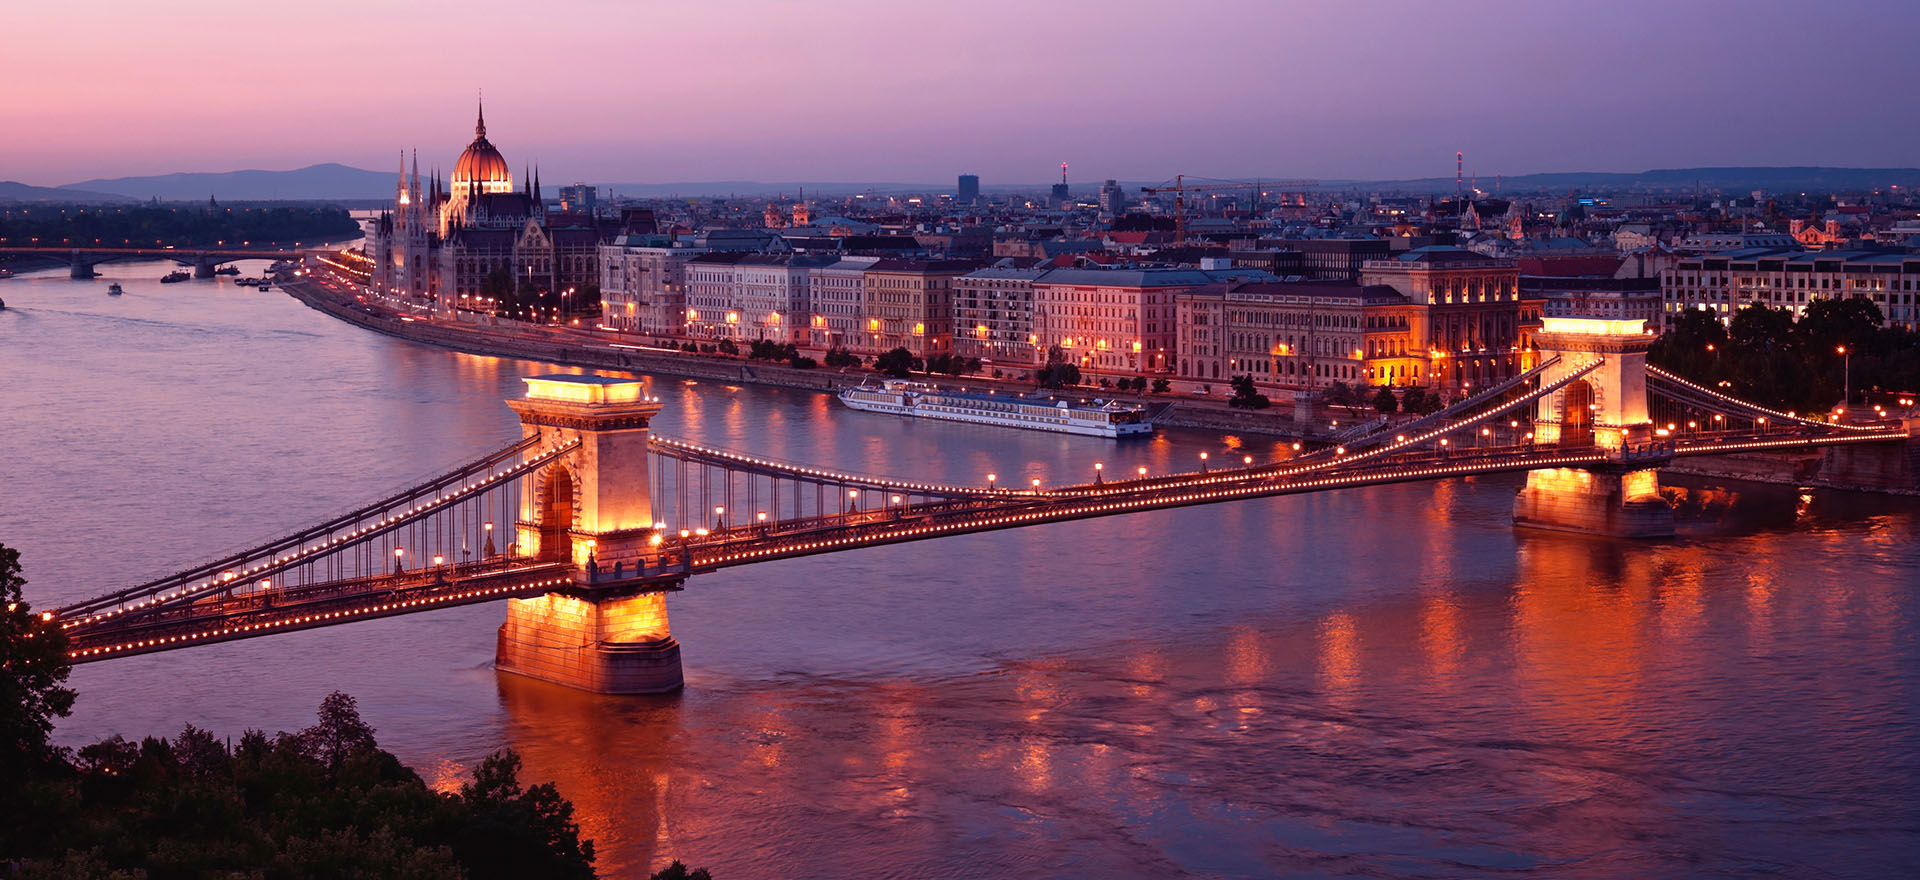 Chain Bridge over Danube river in evening